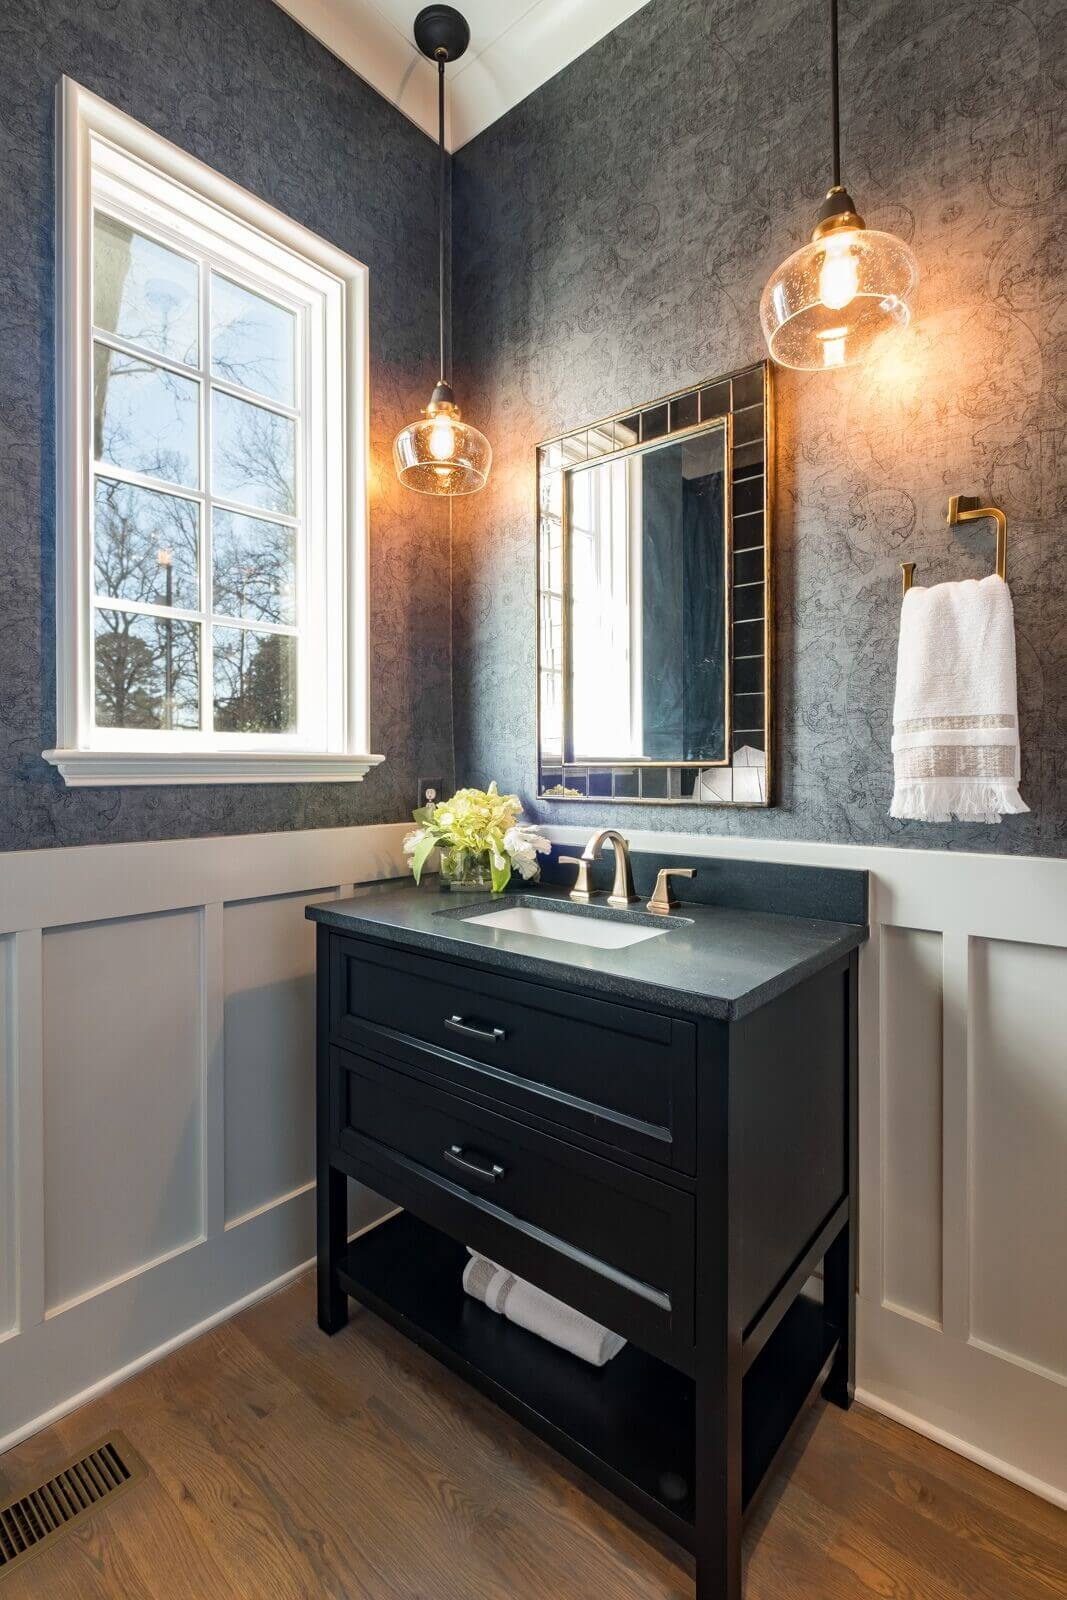 Beautifully designed guest bathroom with hardwood flooring and a dark vanity.